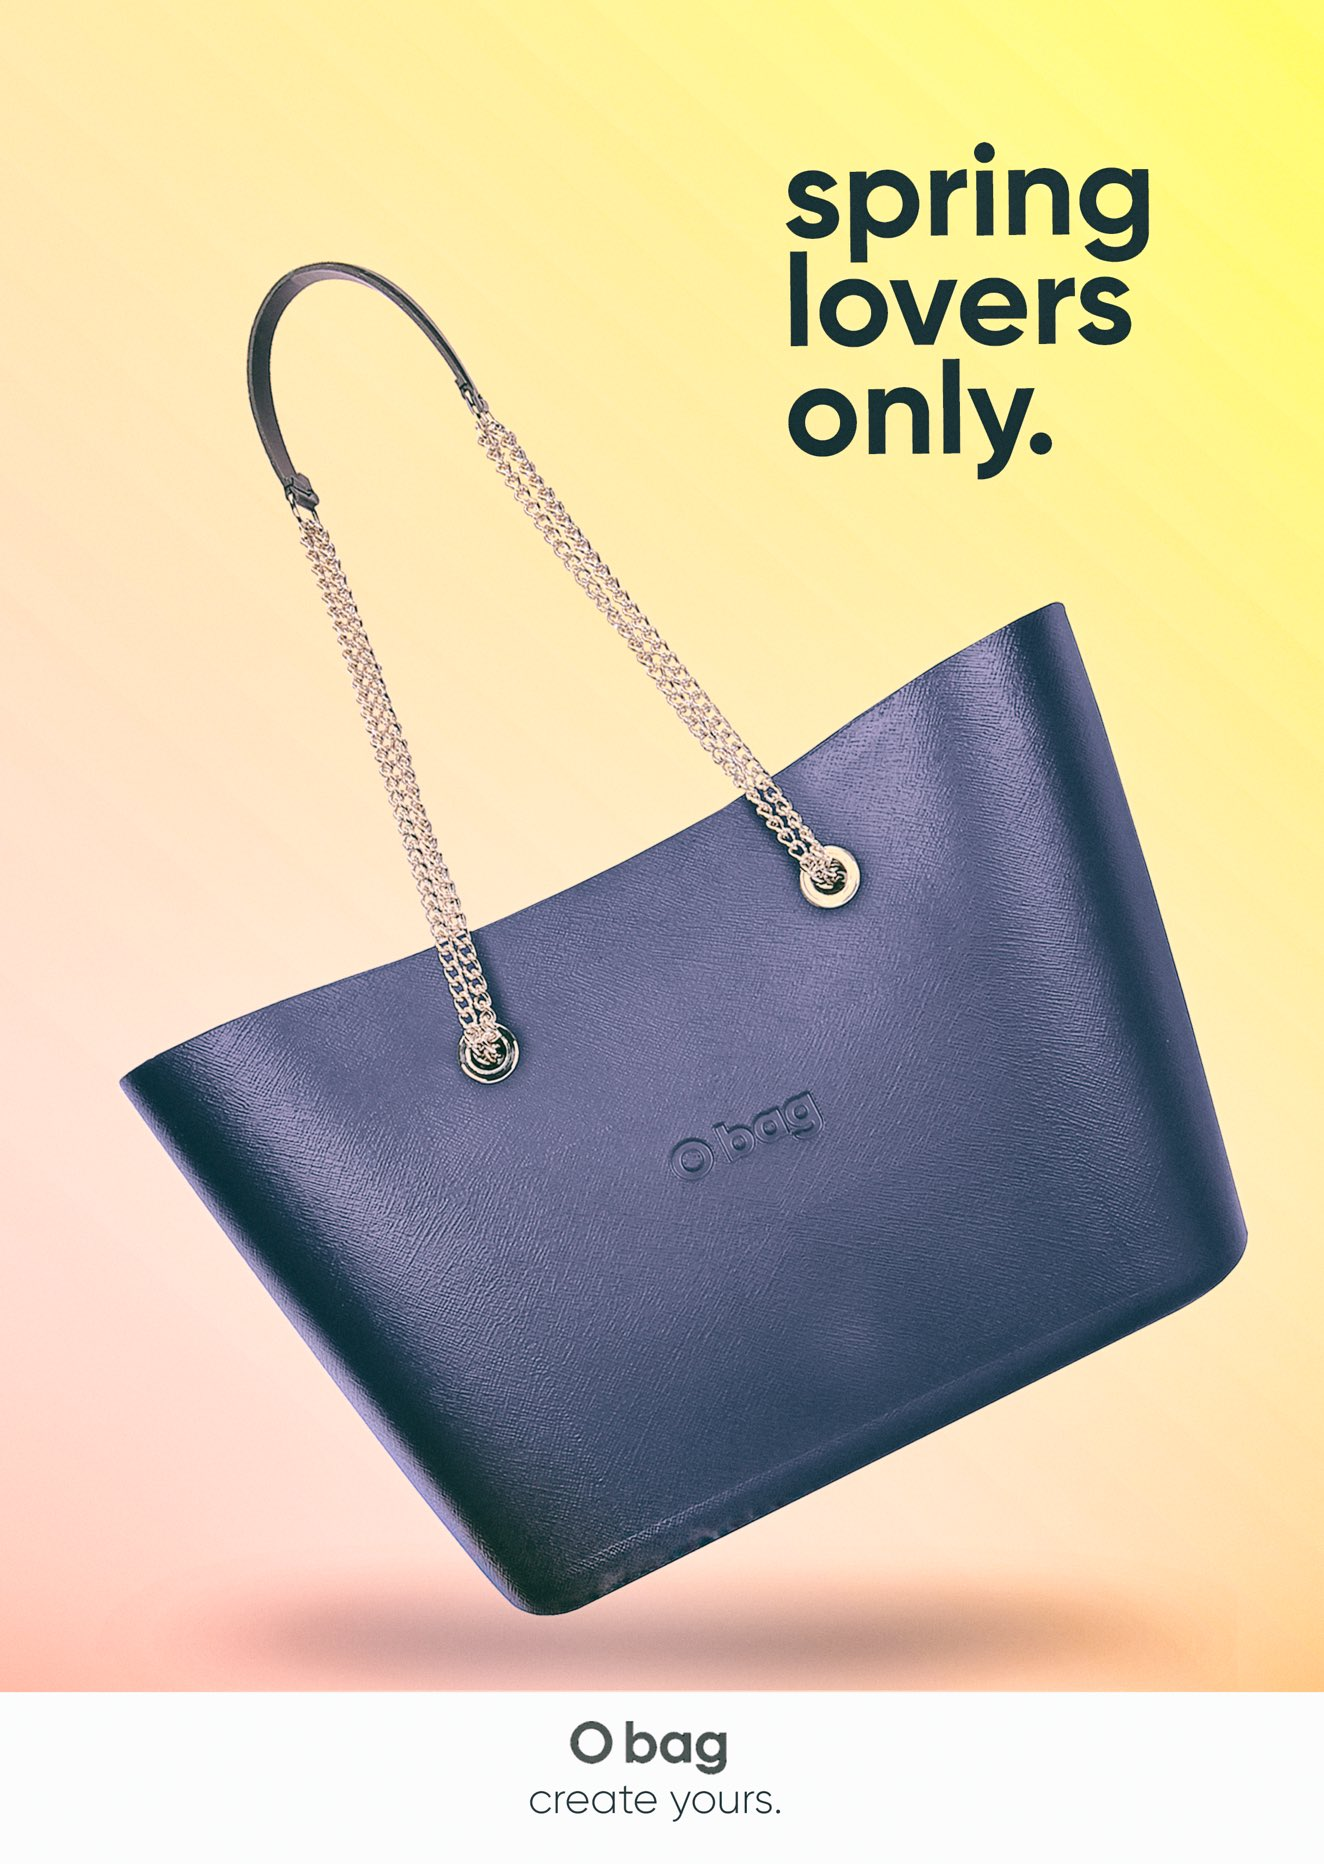 Brand marketing campaign for O Bag – Luther Dsgn company